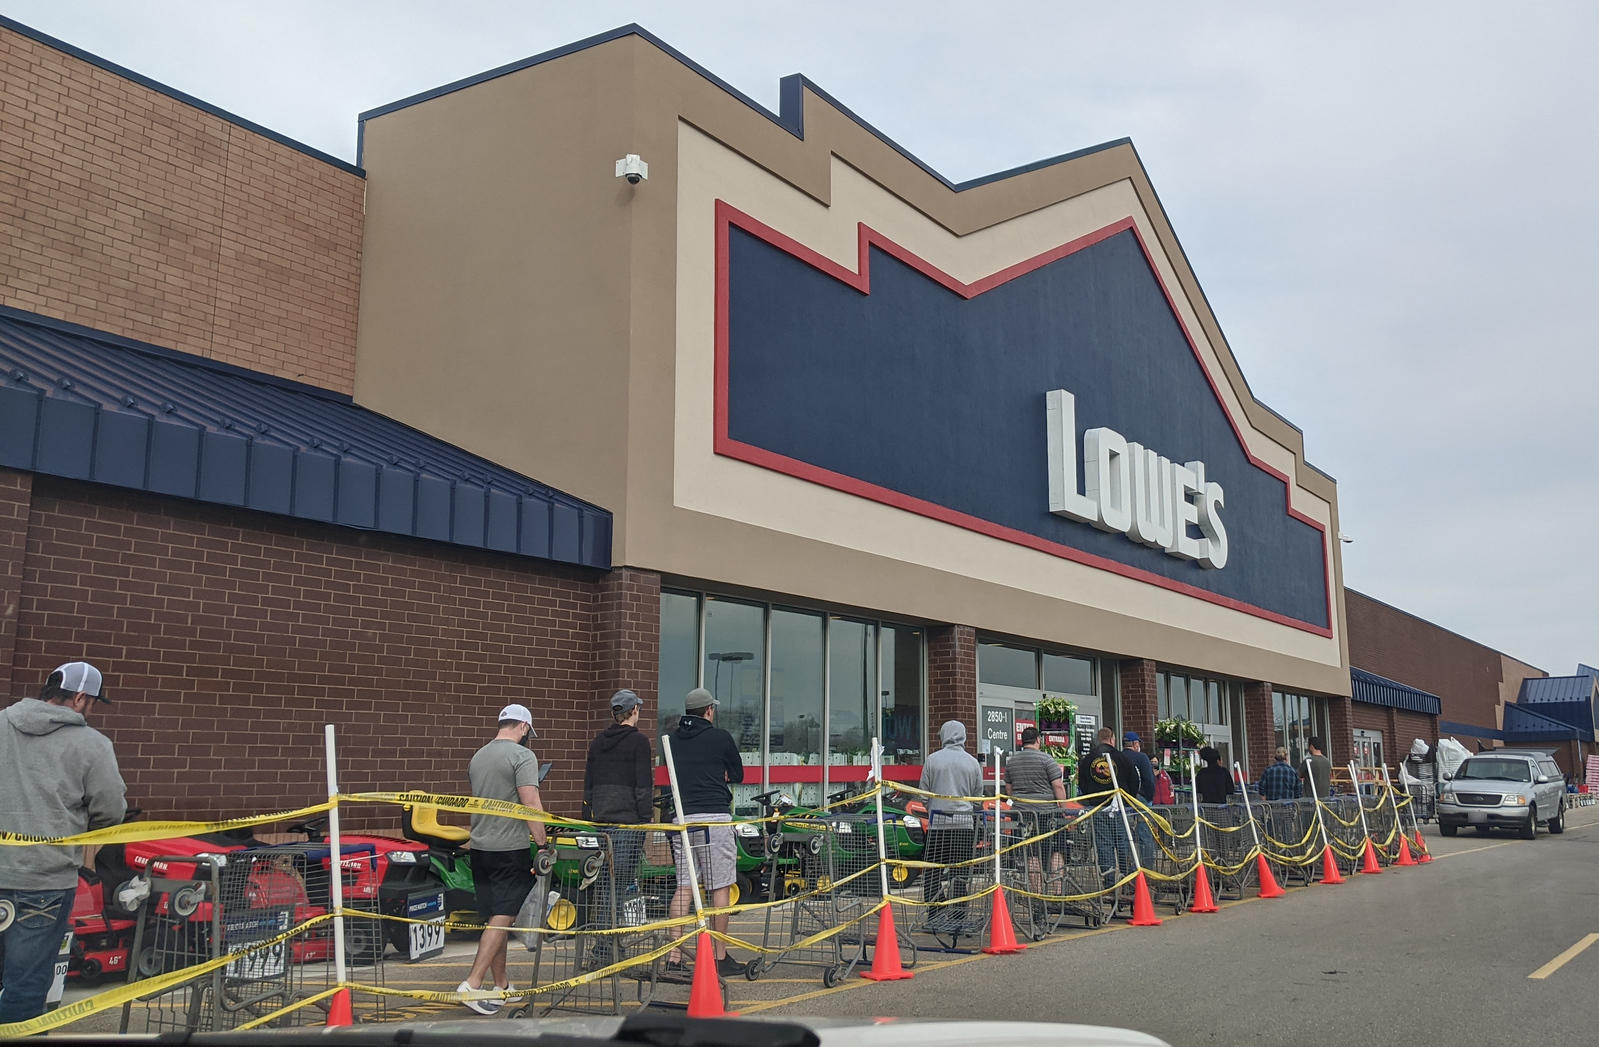 Customers waiting in line outside the Lowe's home improvement store in Beavercreek/Fairborn, Ohio, Apr. 11, 2020